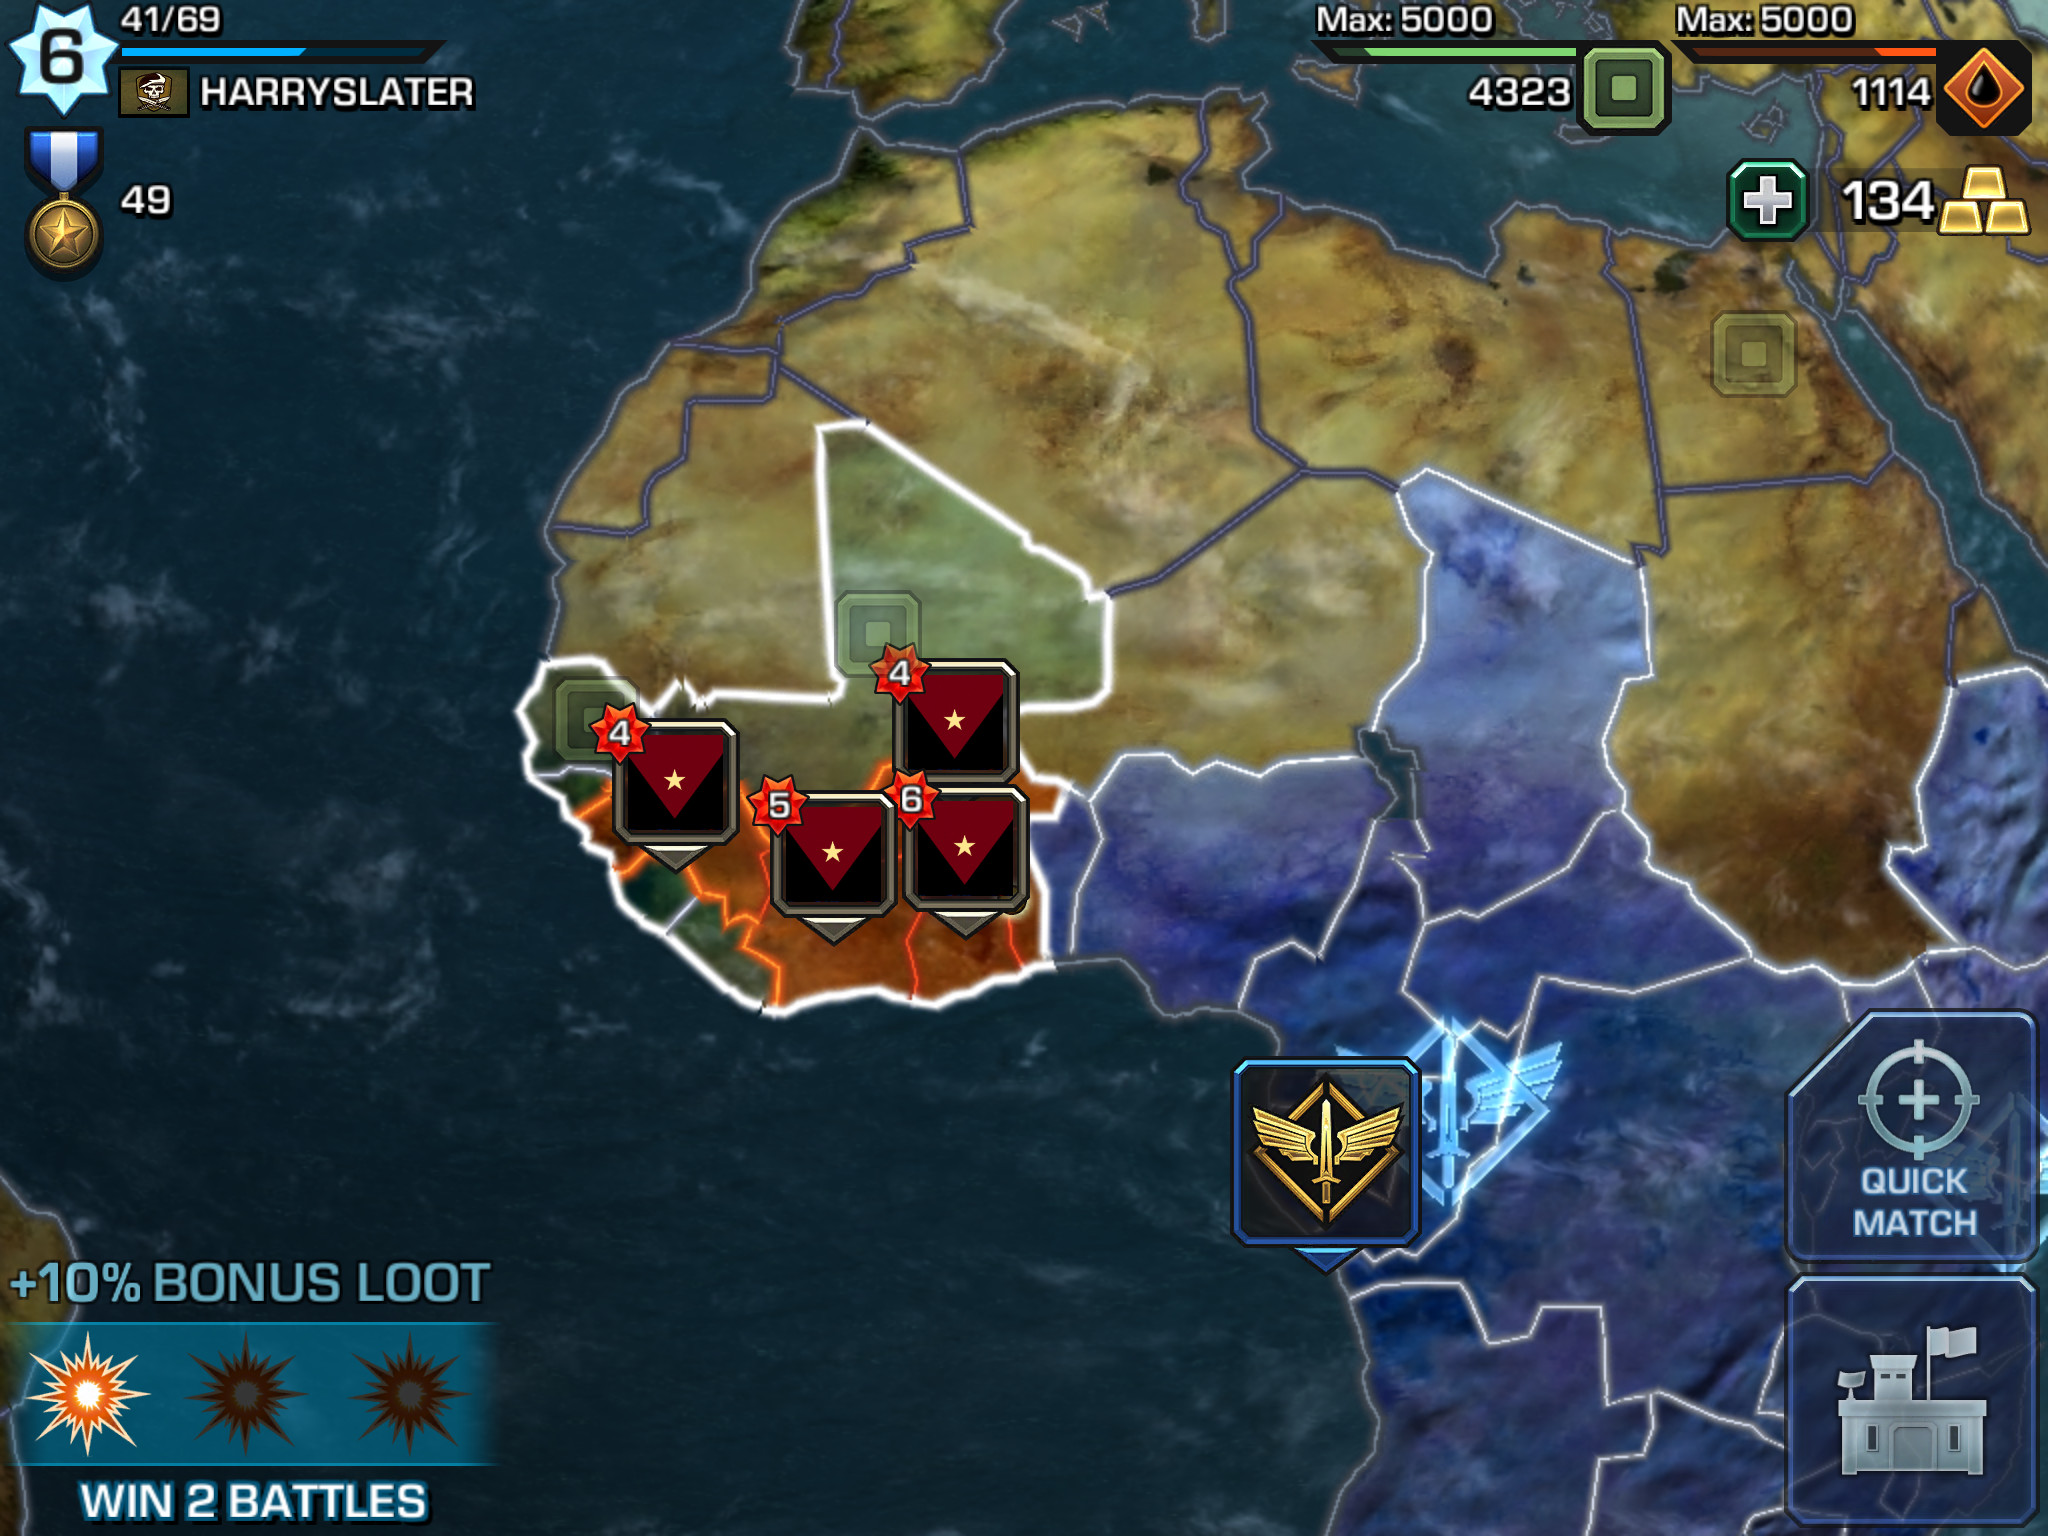 Empires allies image 1 of 5 empires allies iphone screenshots empires allies iphone screenshot 1 gumiabroncs Choice Image